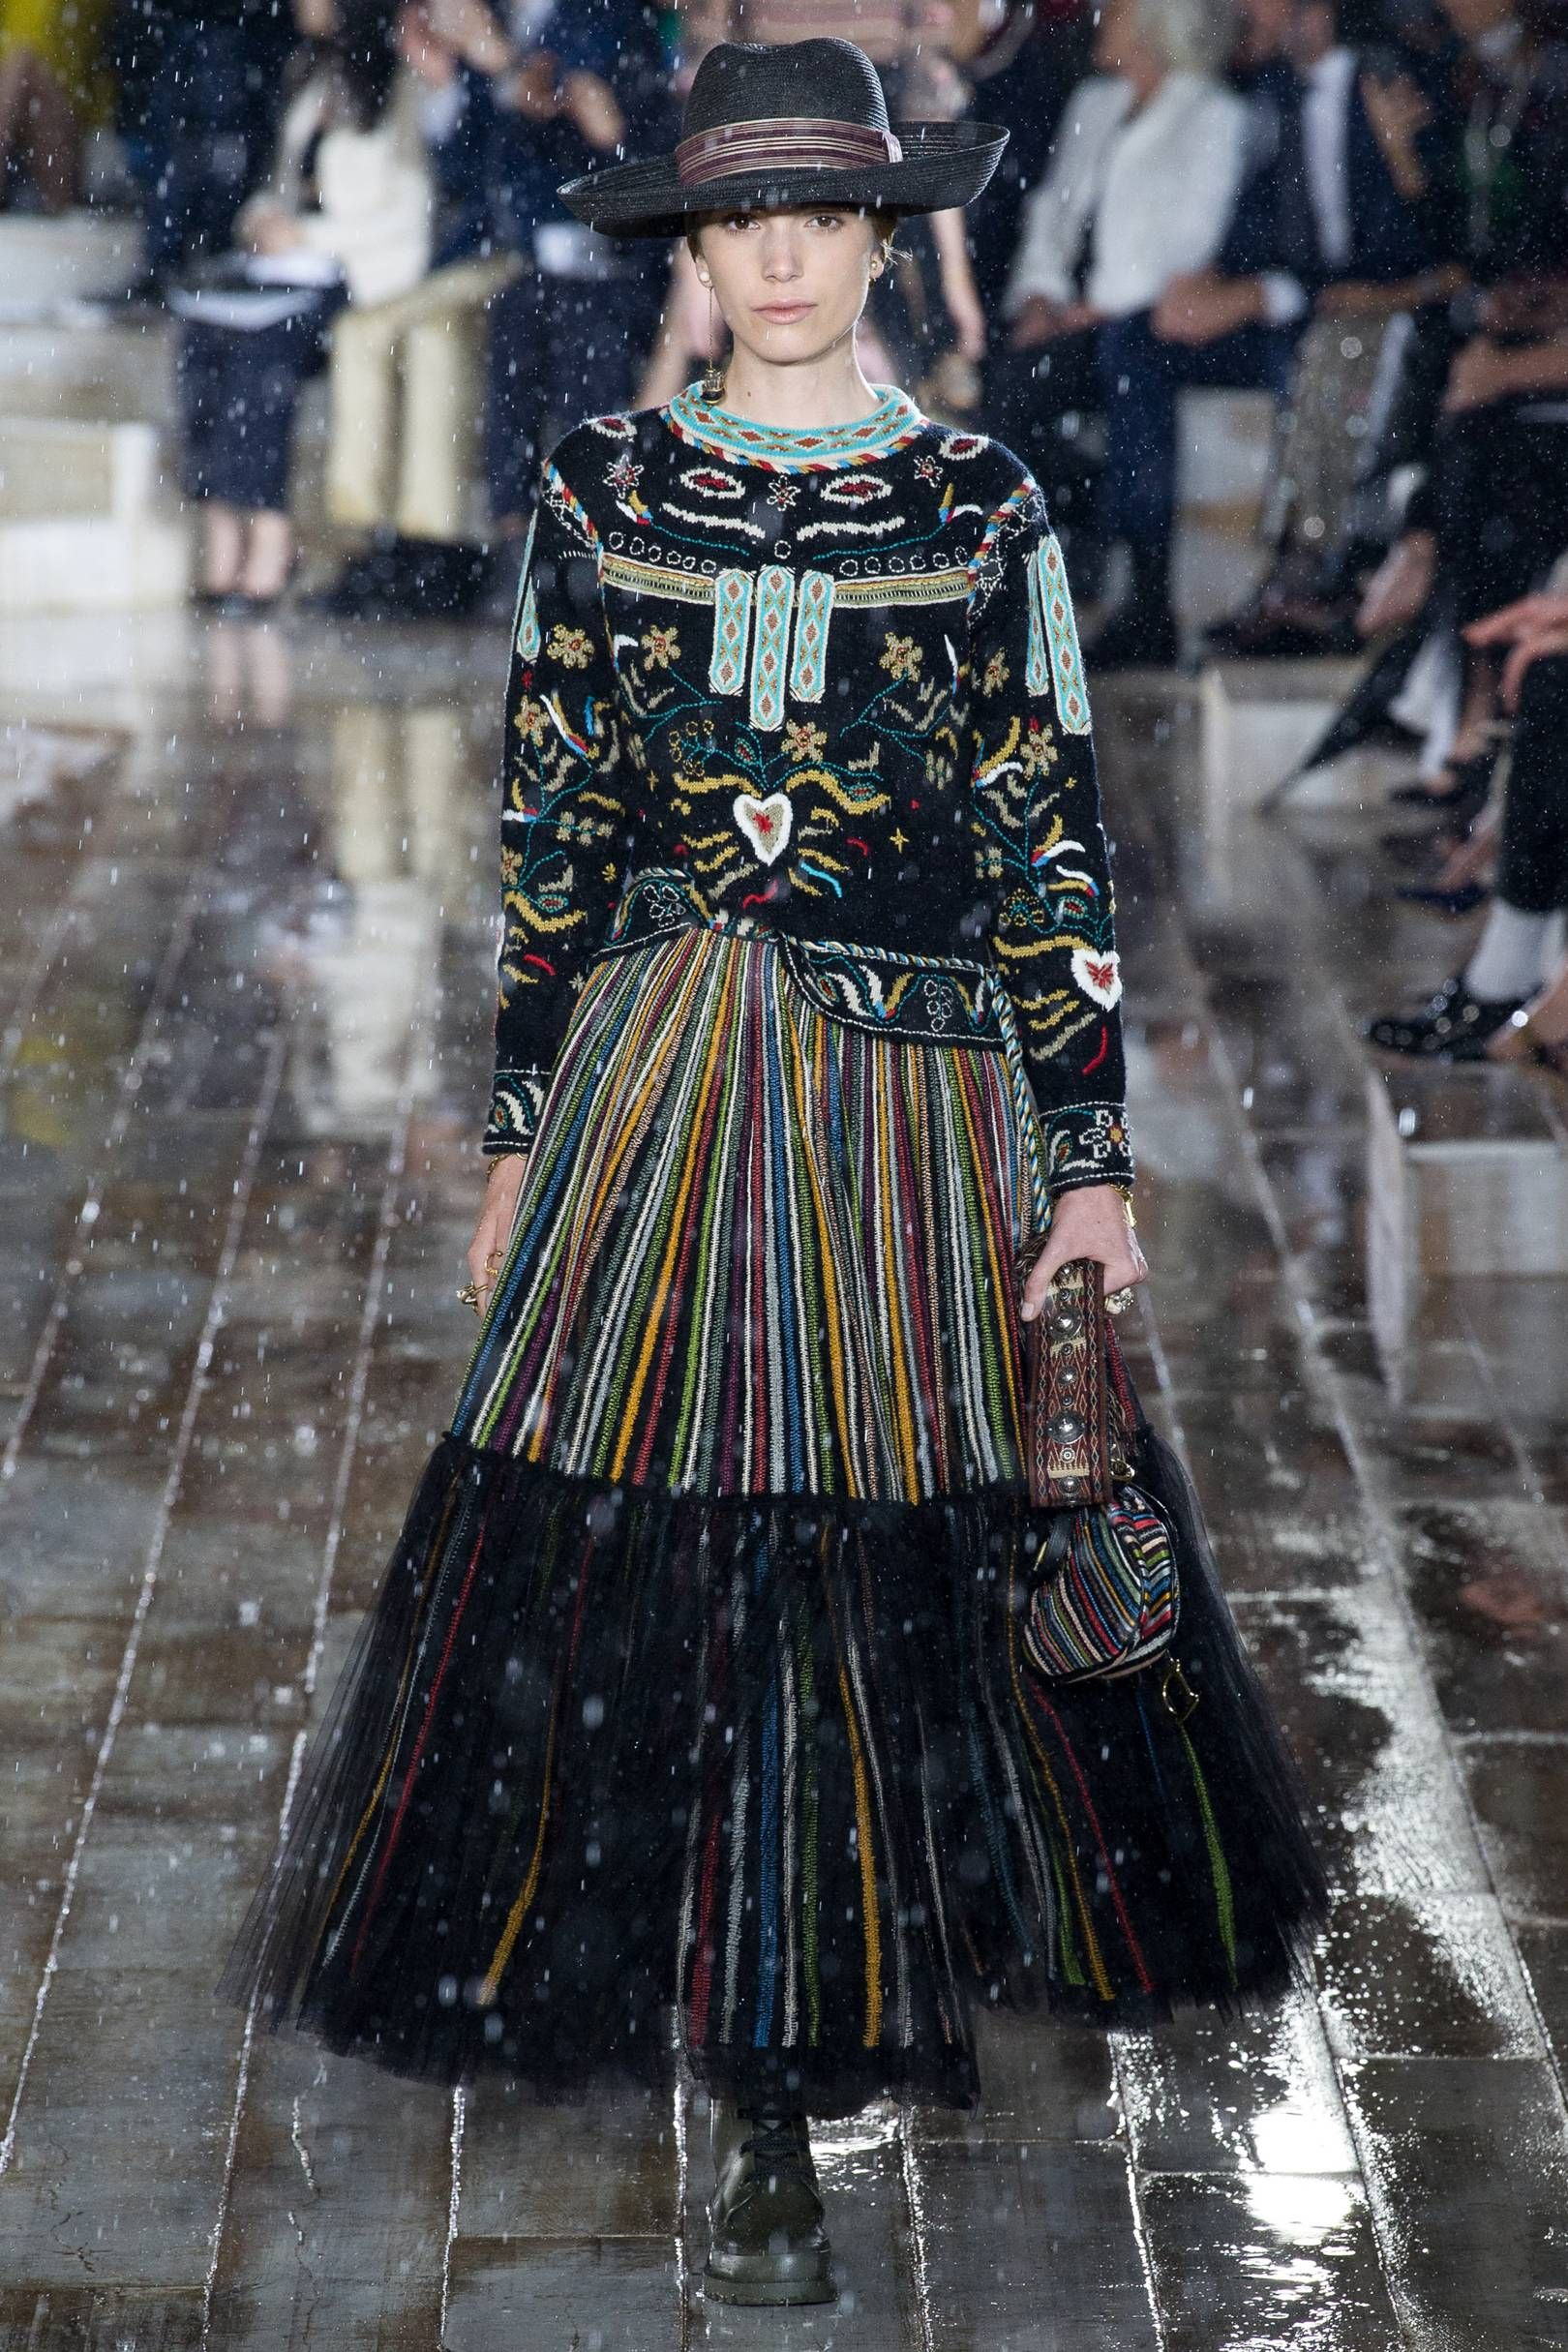 43bd2c993e962 Dior Spring Summer 2019 Resort Collection - Heavy embellishment and nordic  inspired embroidery